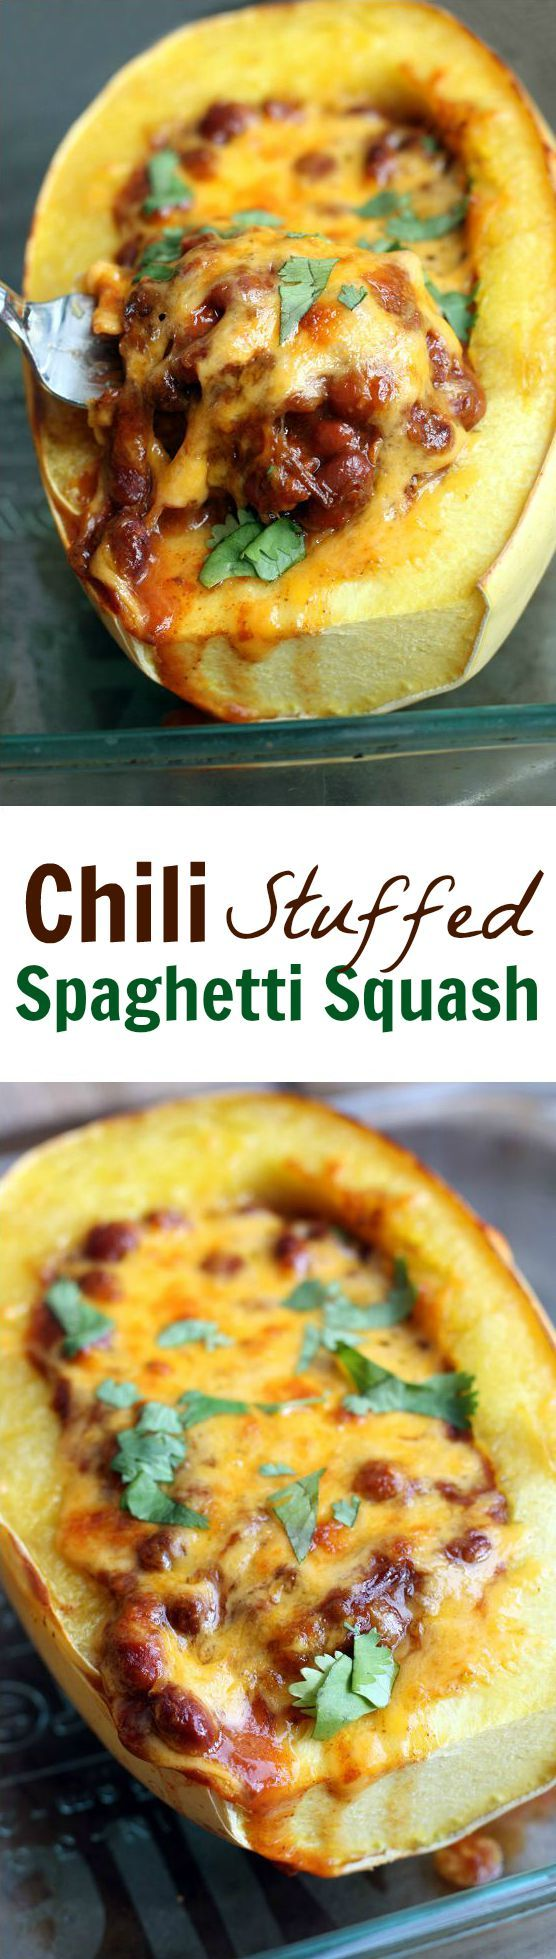 Chili & Cheddar Cheese Stuffed Spaghetti Squash - is comfort food at it's finest! I LOVE stuffed spaghett squash. I could eat this Tex Mex Spaghetti Squash everyday! This chili version is perfect for cooler nights when I want something warm & comforting without all the calories!